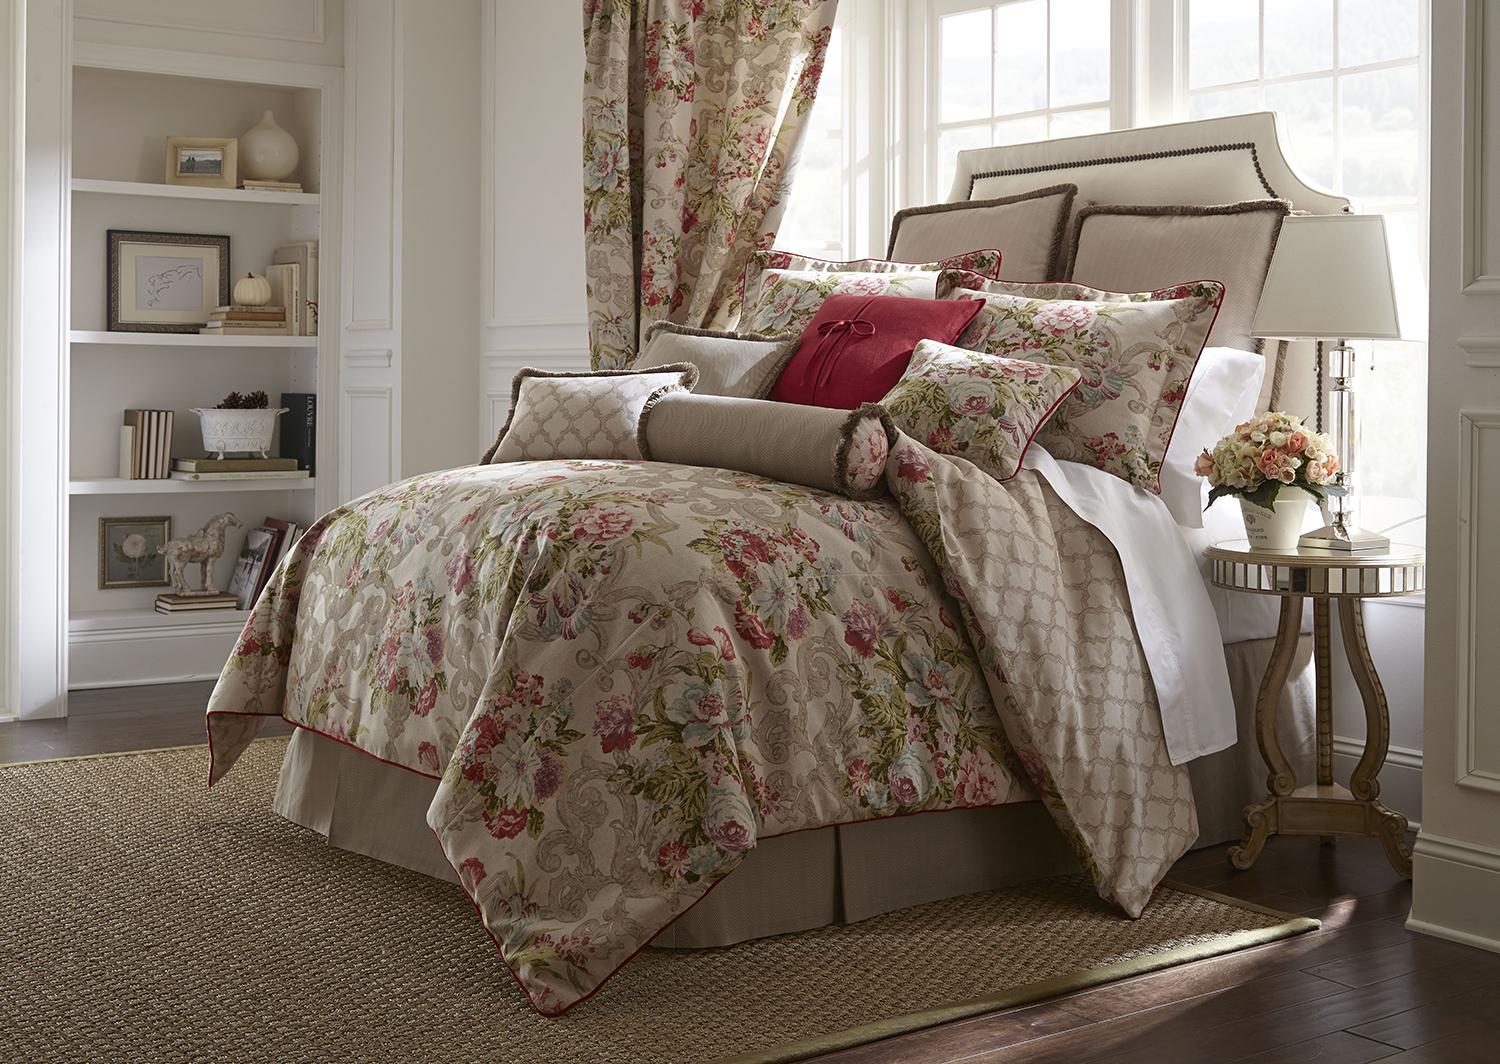 Bristol By Rose Tree Bedding Beddingsuperstore Com